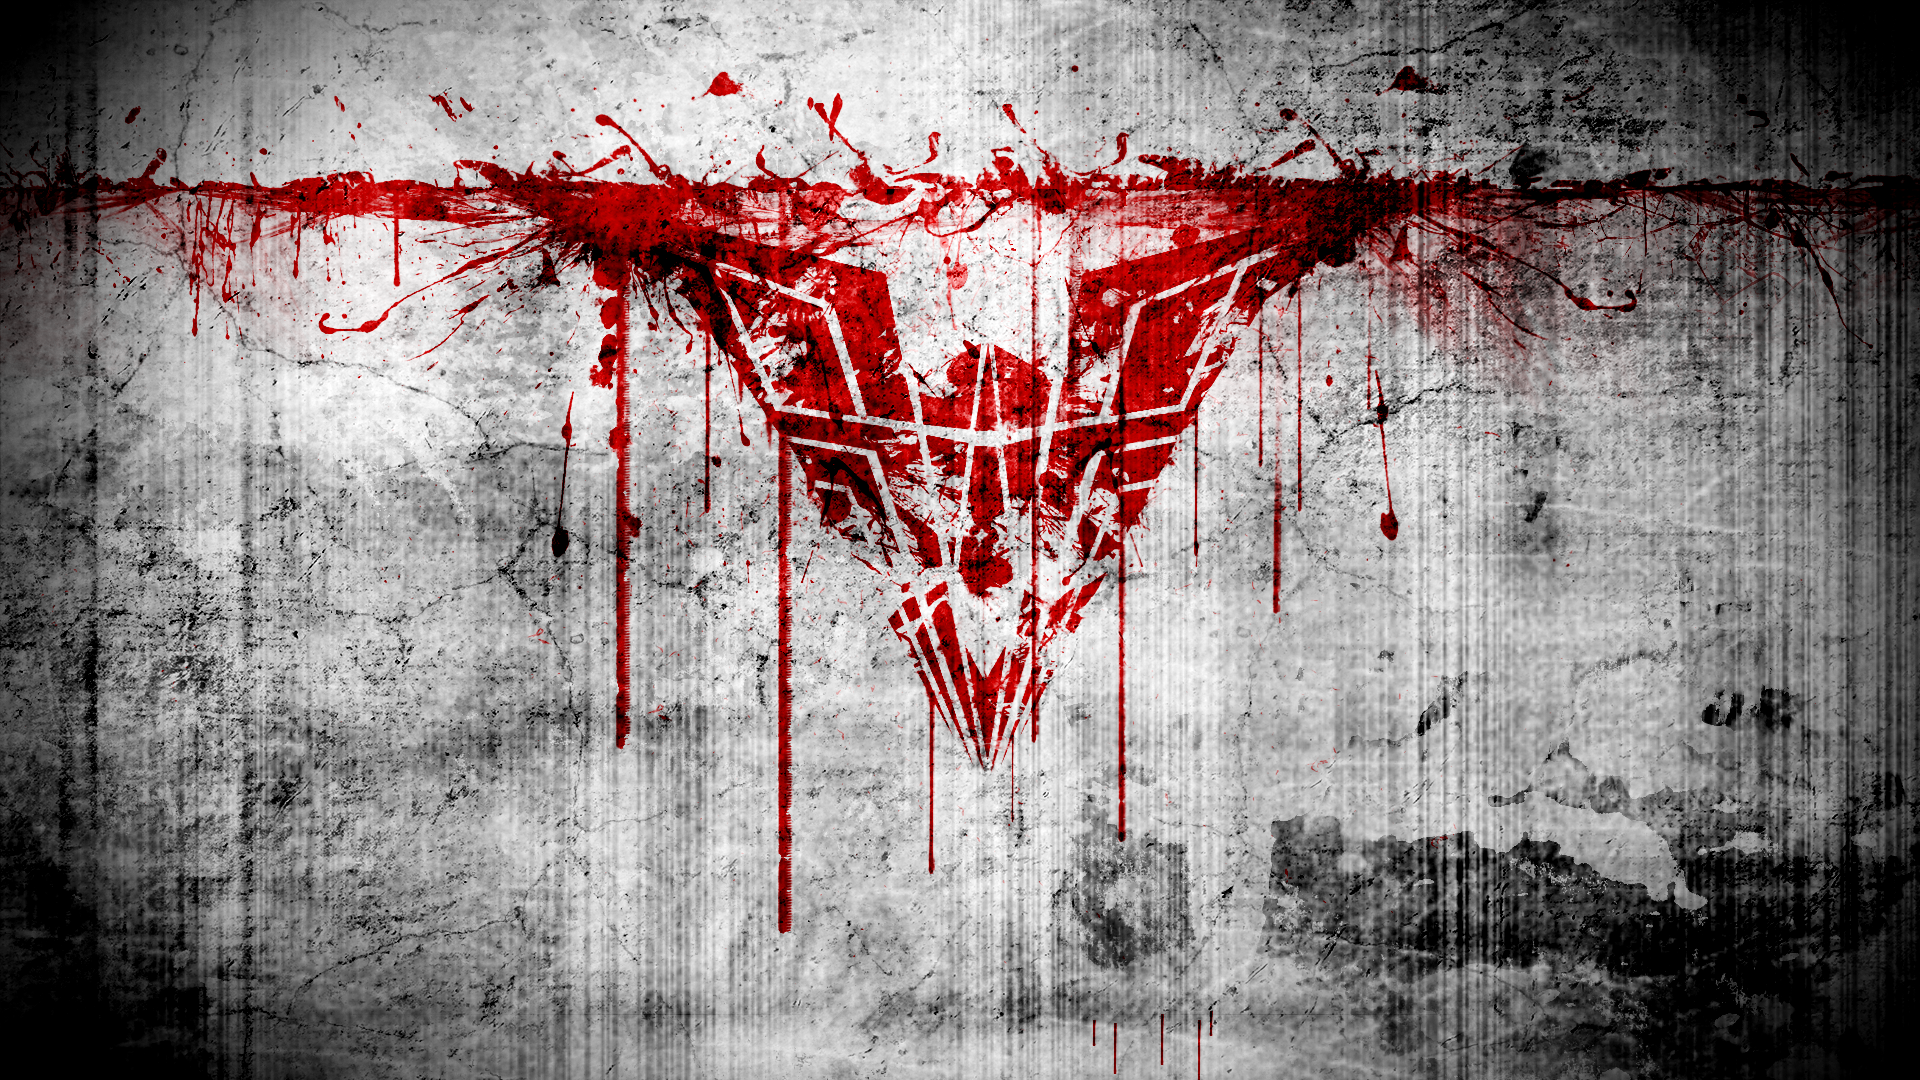 Beautiful Wallpaper Name Style - hardii_s_logo__sinister_style_and_without_name__by_hardii-d64smyv  Pic_99569.png